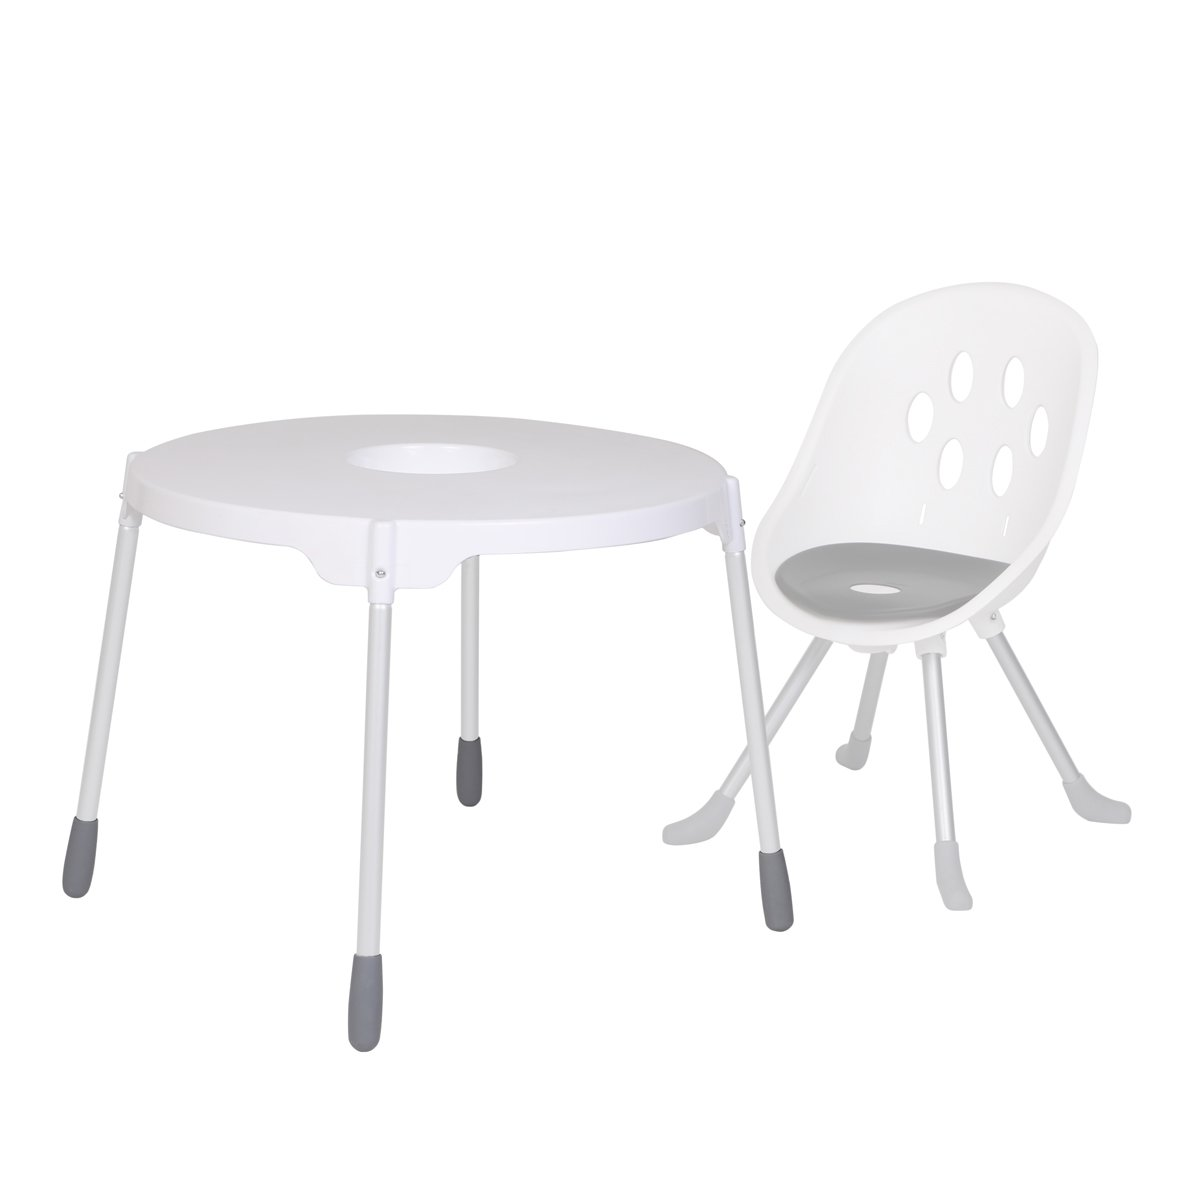 https://cdn.accentuate.io/4615341604917/19118870462517/phil_and_teds_poppy_table_top_with_leg_set_and_poppy_high_chair_1-v1630985321597.jpg?1200x1200